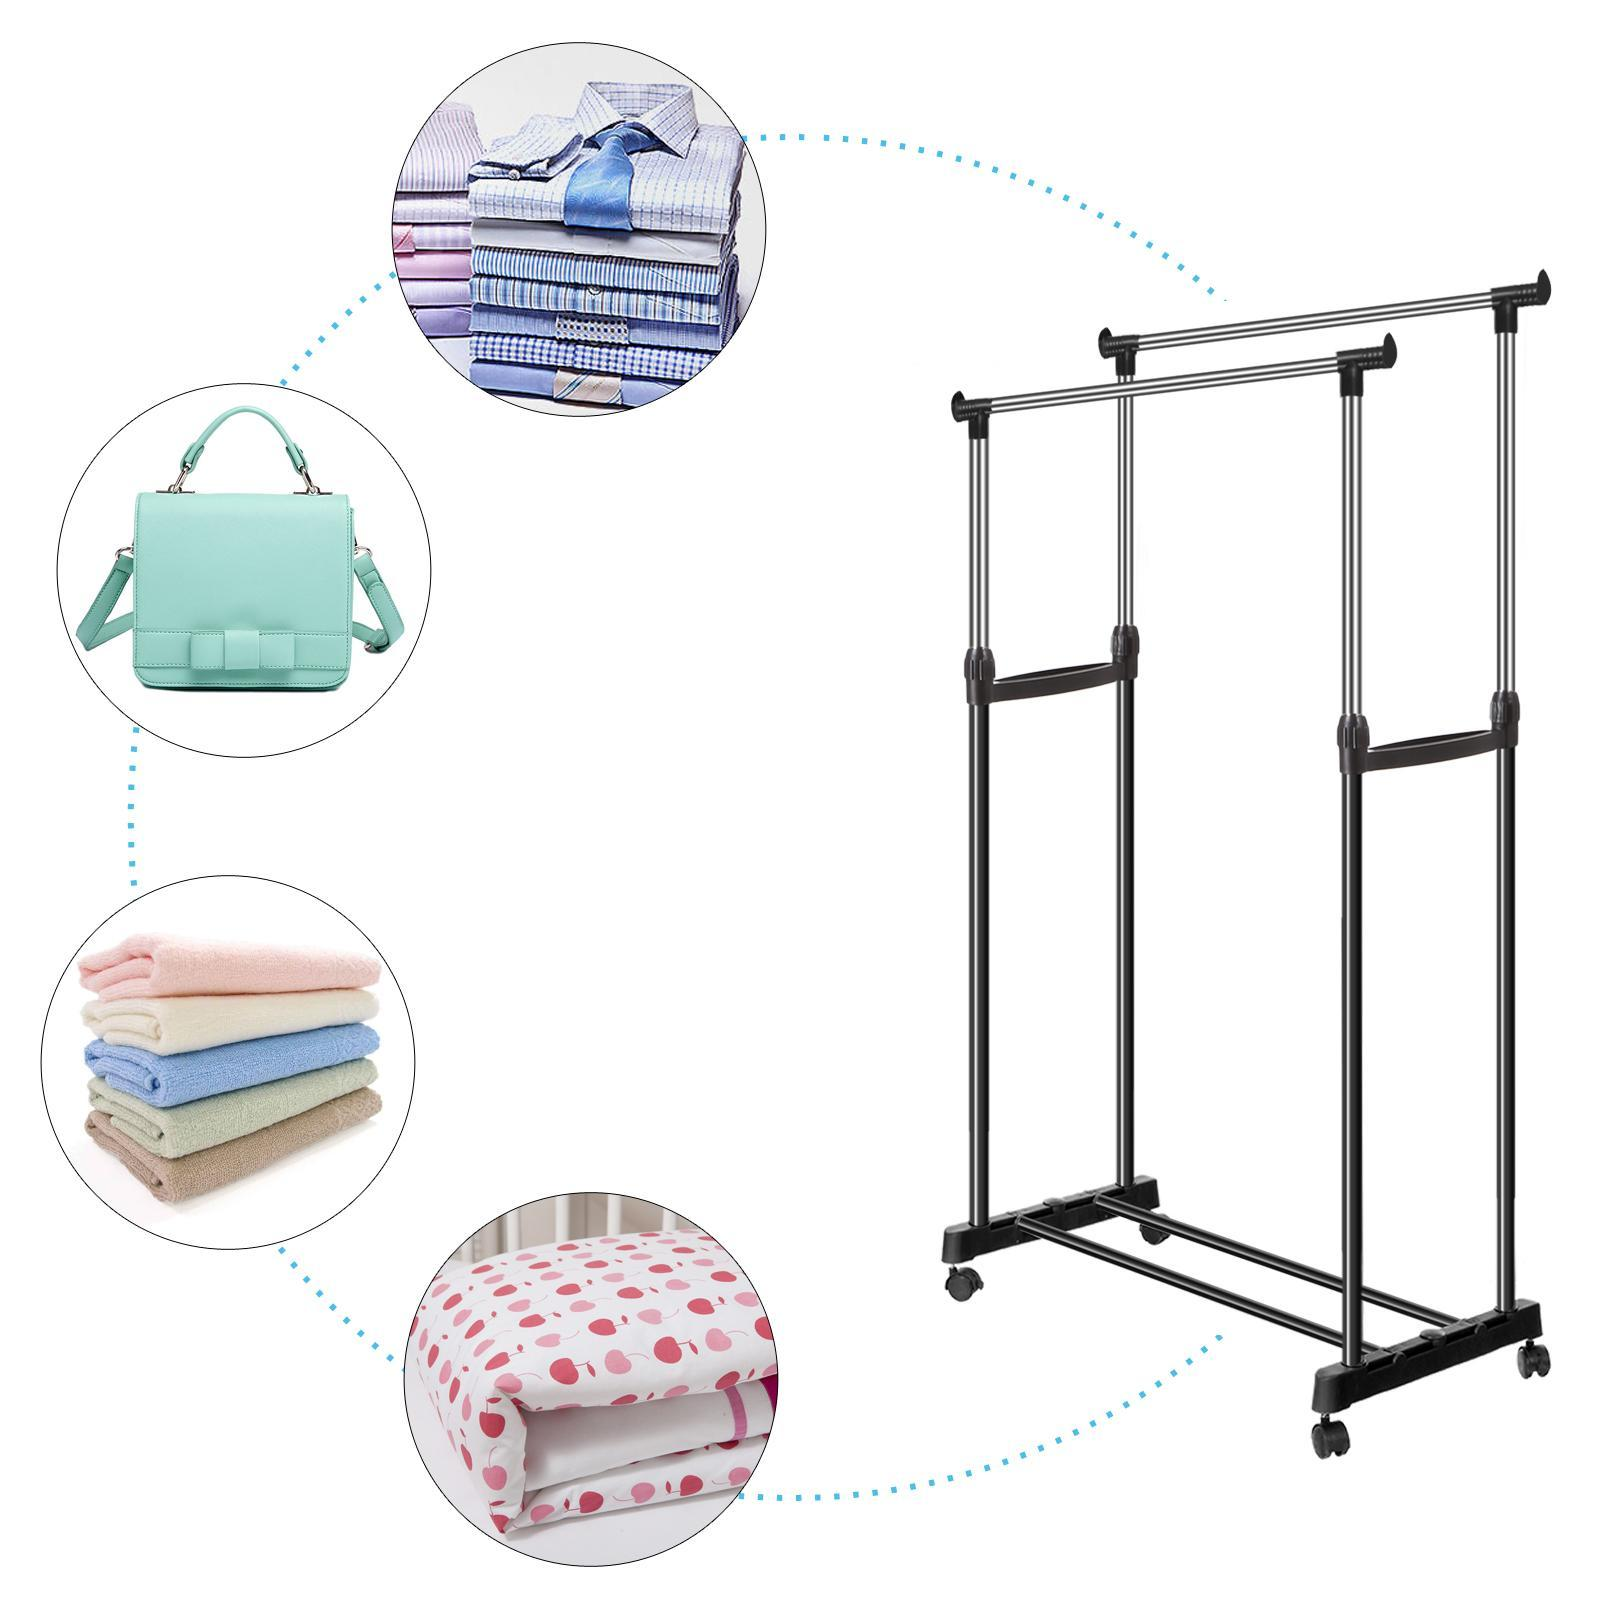 Adjustable Garment Rack Rolling Clothes Drying Rack Laundry Hanger Double Rail